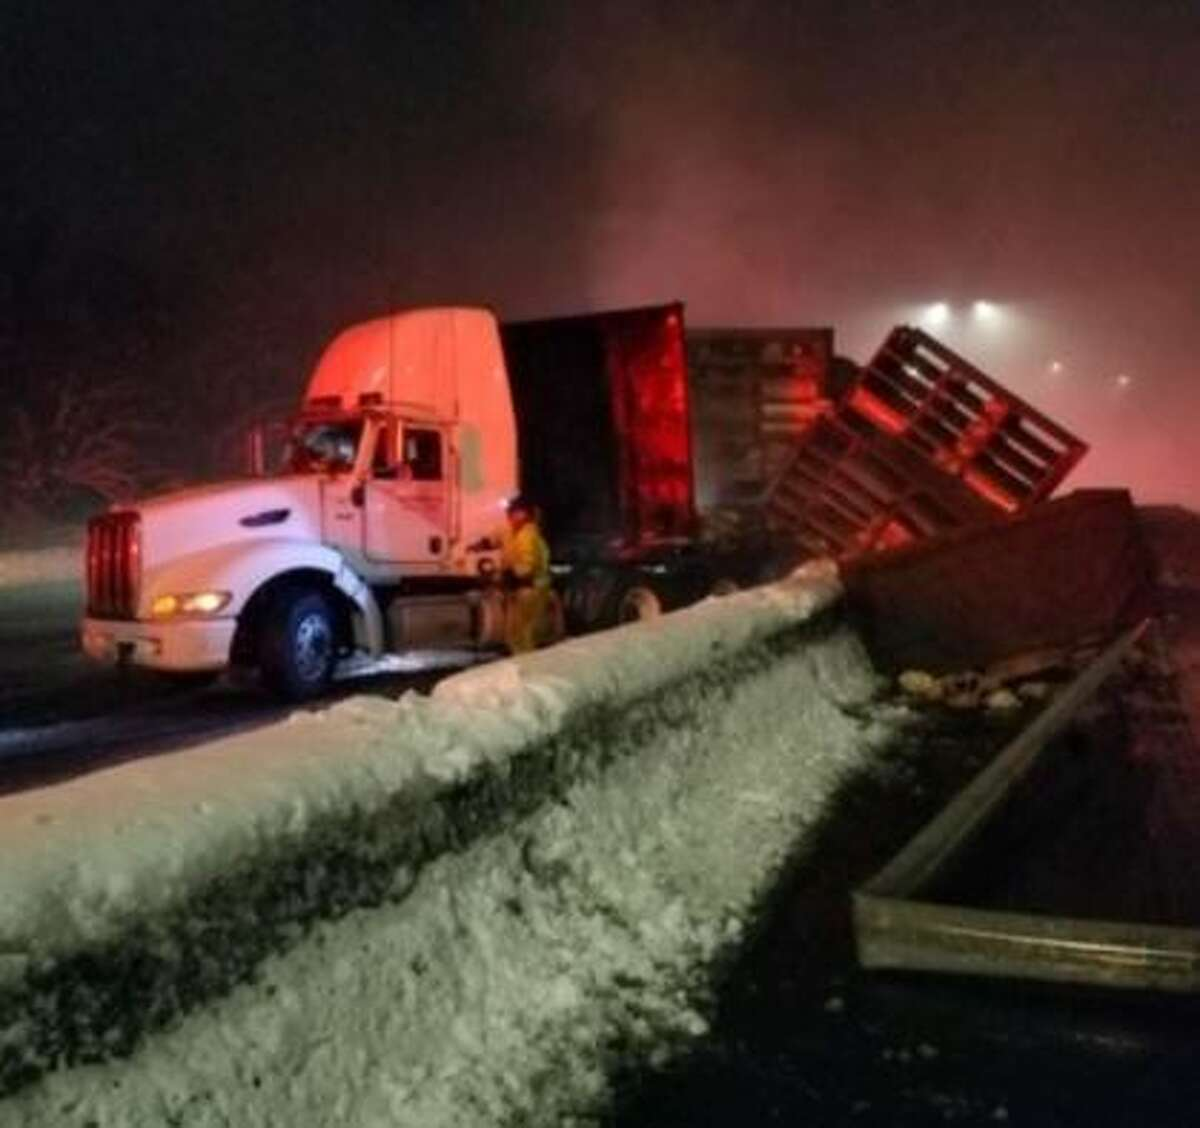 A semi-trailer tractor transporting live chickens crashed into the center barrier Monday morning on Interstate 5 in Olympia. The driver was uninjured. Some chickens were killed in the crash, others were injured and others ran free.